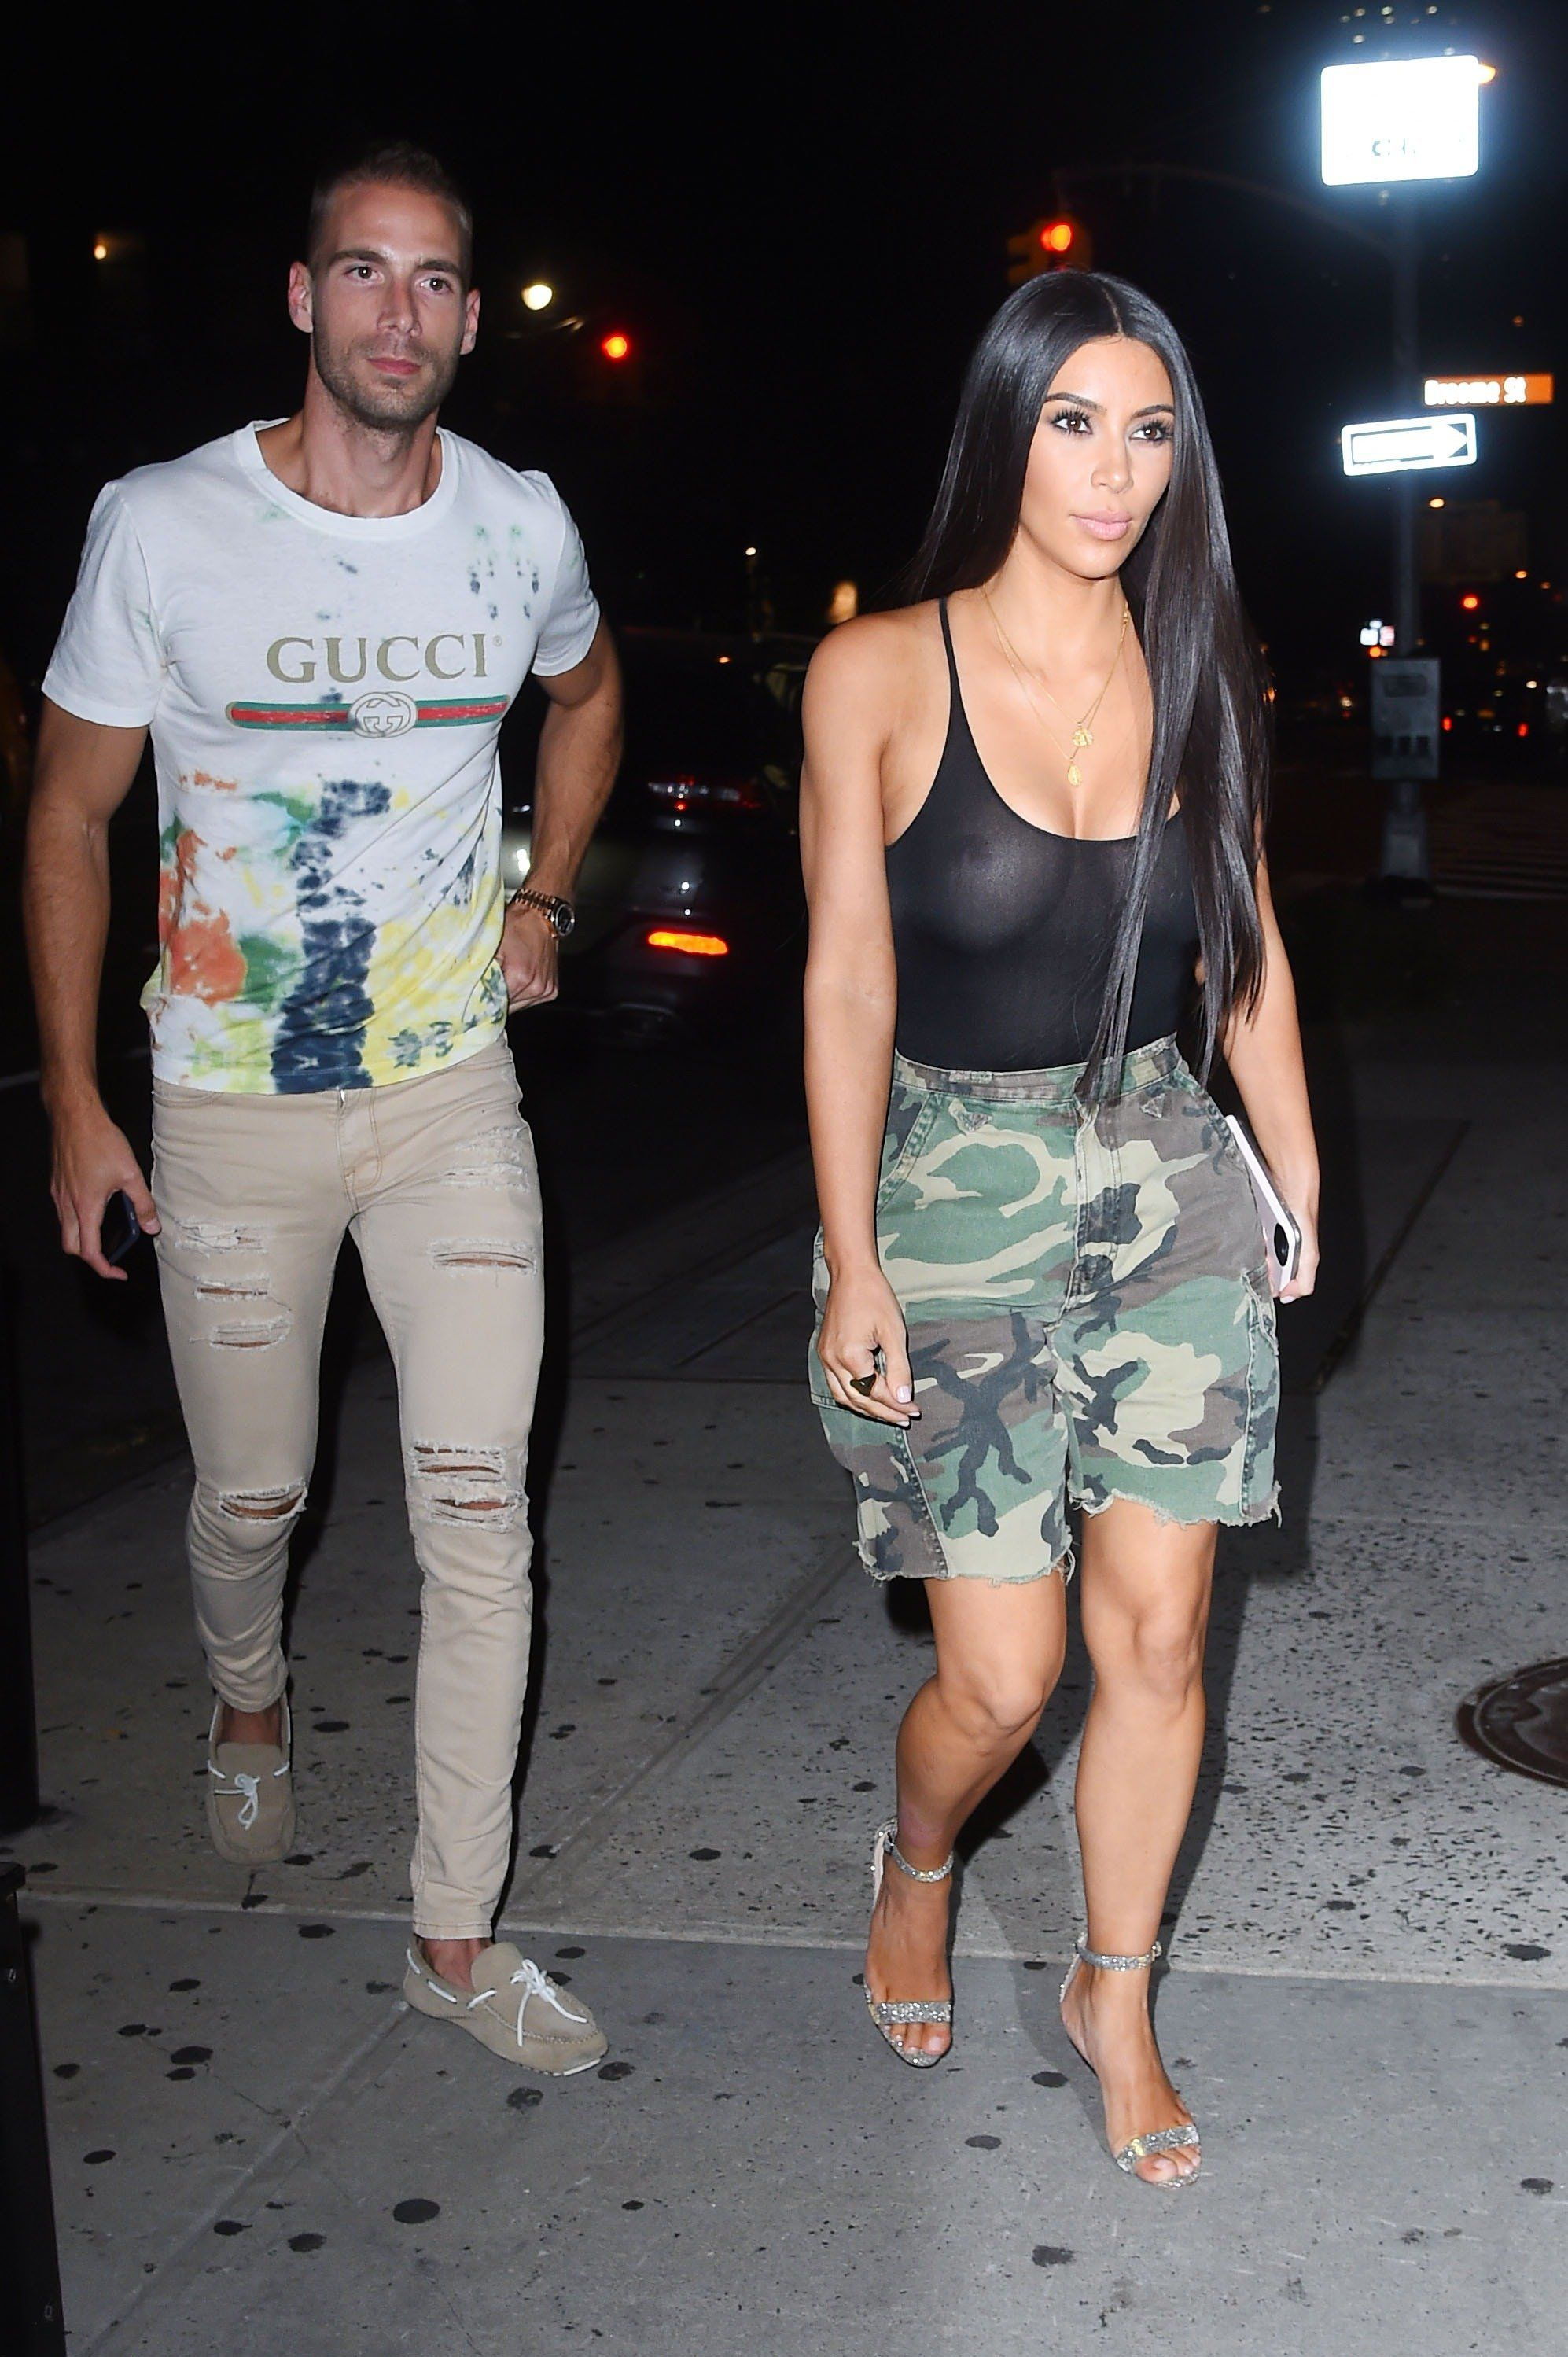 NEW YORK - AUGUST 01: Kim Kardashian and Kendall Jenner shop East Village thrift stores with there 2 bodyguards as Kim displays her chest in a see through tank top with army fatigue shorts on August 01, 2017 in New York, New York.  (Photo by Josiah Kamau/BuzzFoto via Getty Images)